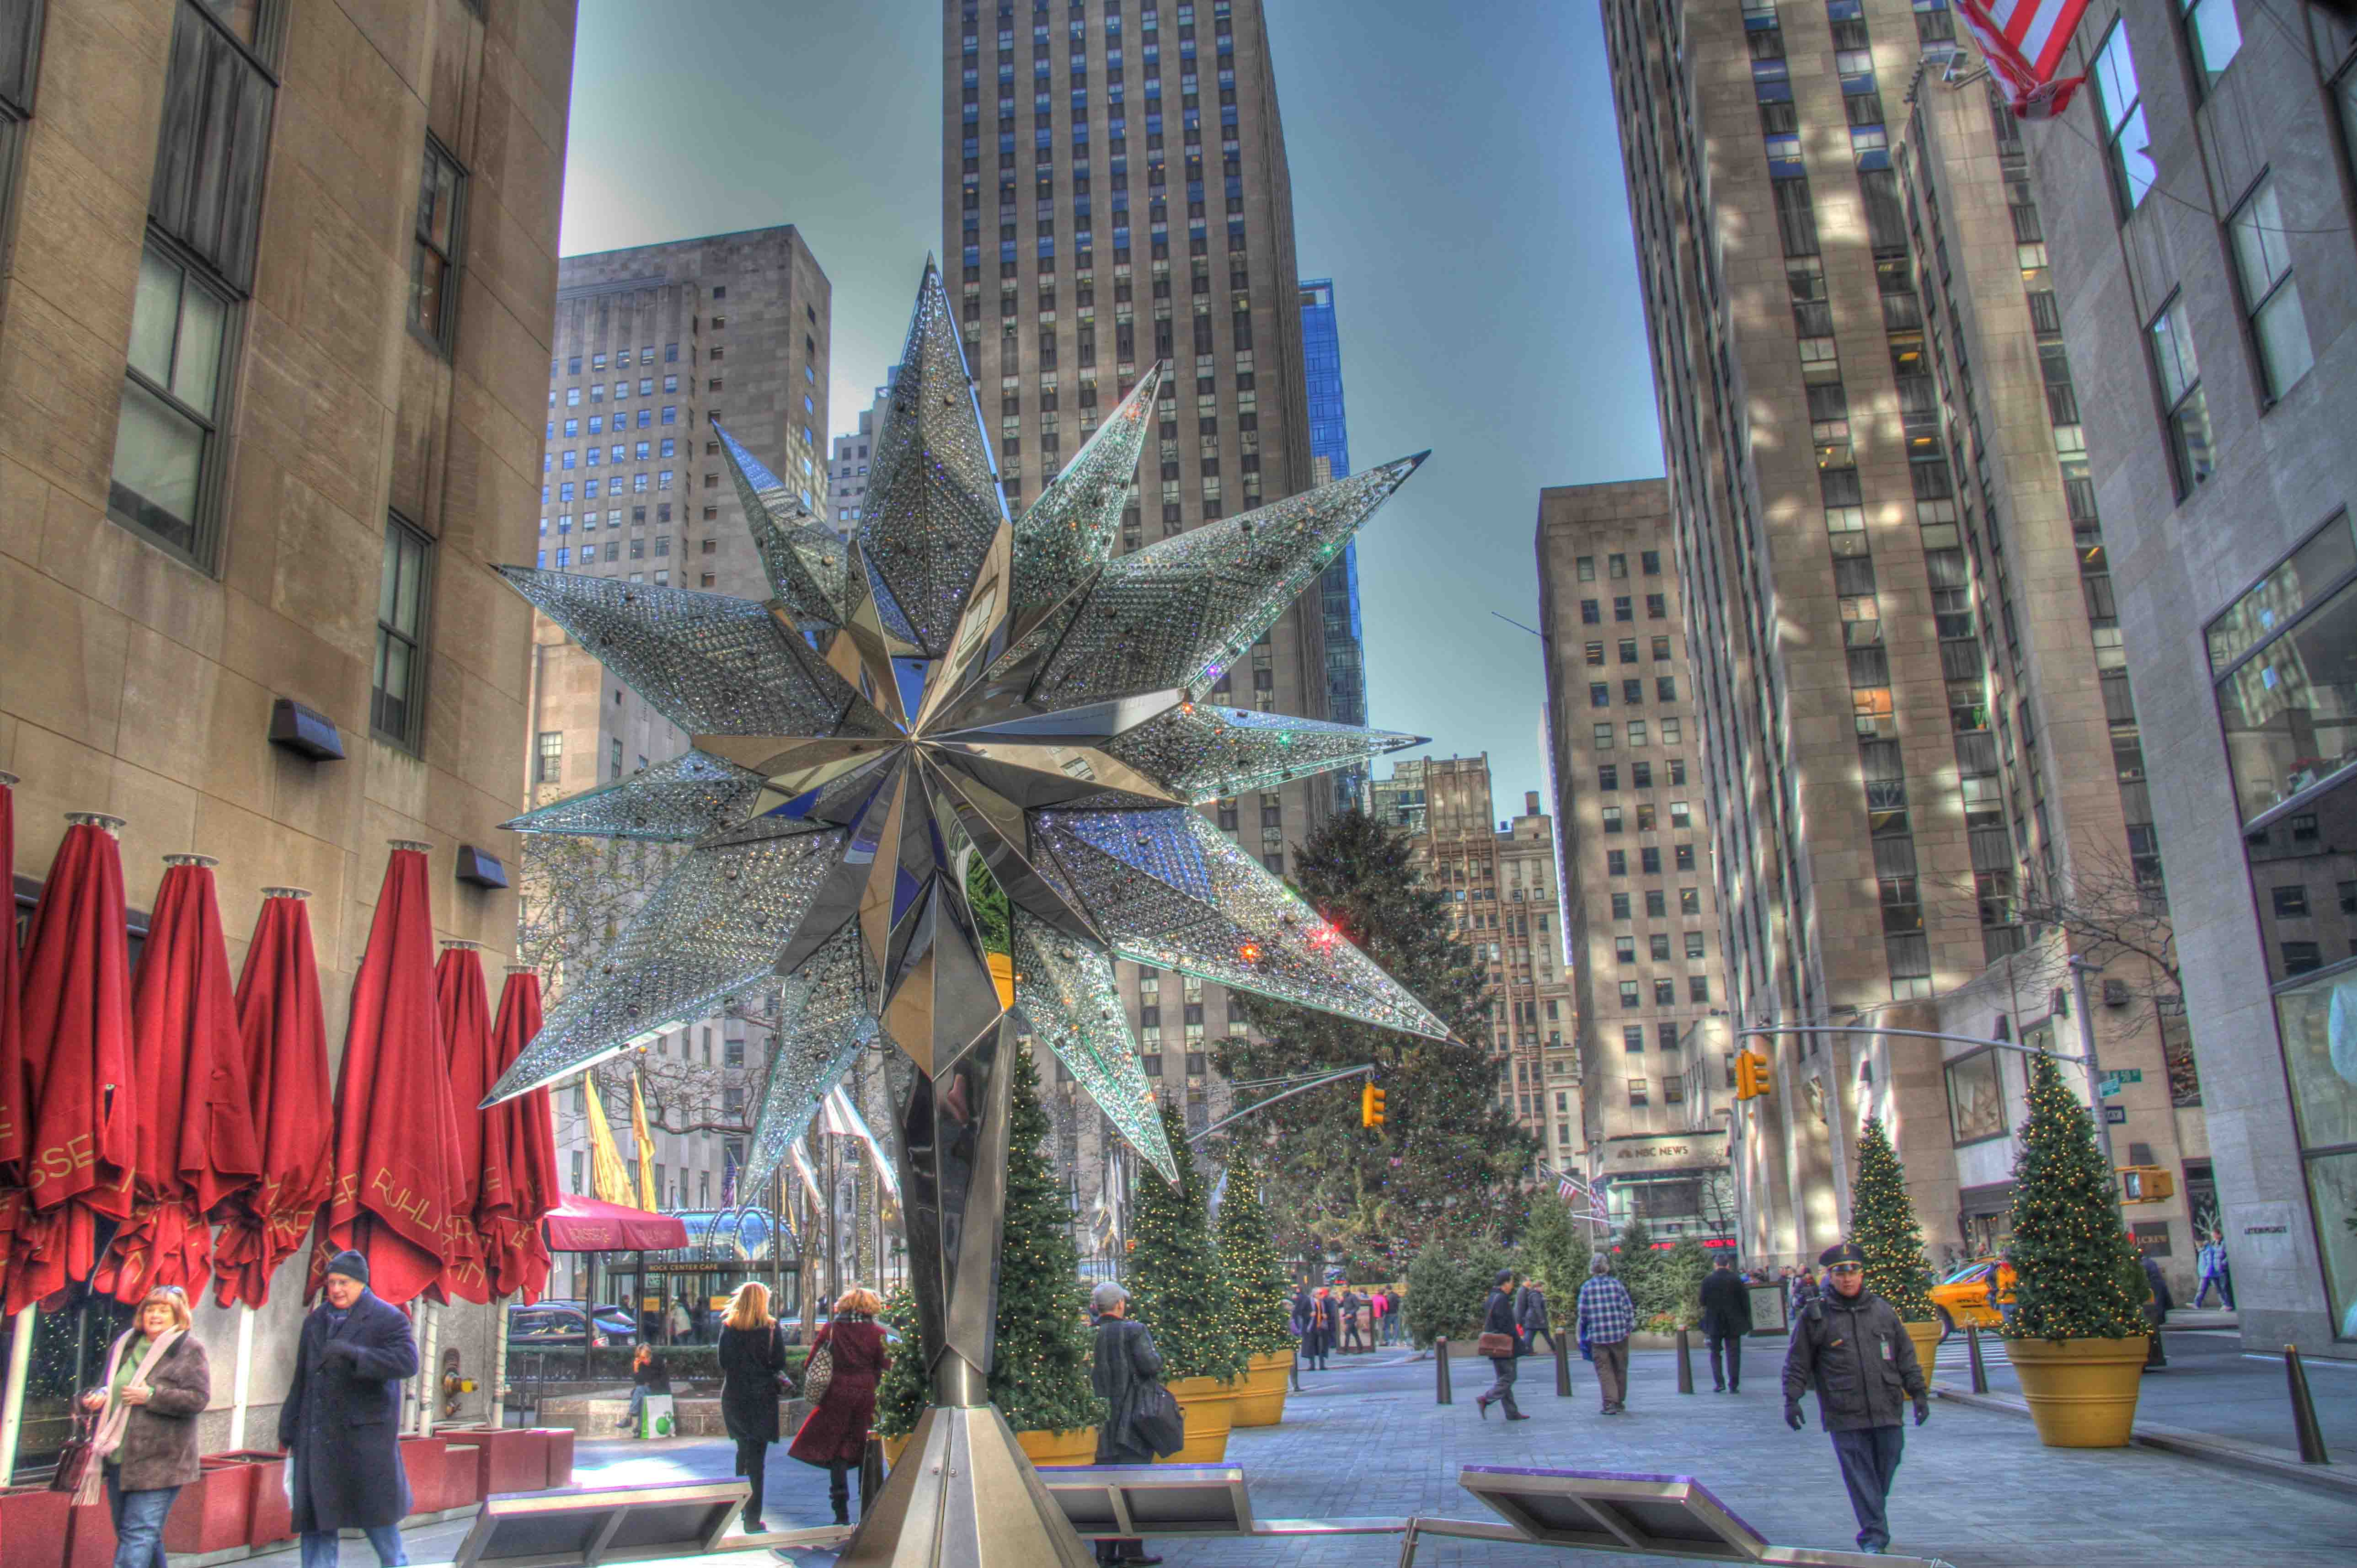 Cucina Restaurant Rockefeller Center The Rockefeller Center Christmas Tree The Swarovski Star